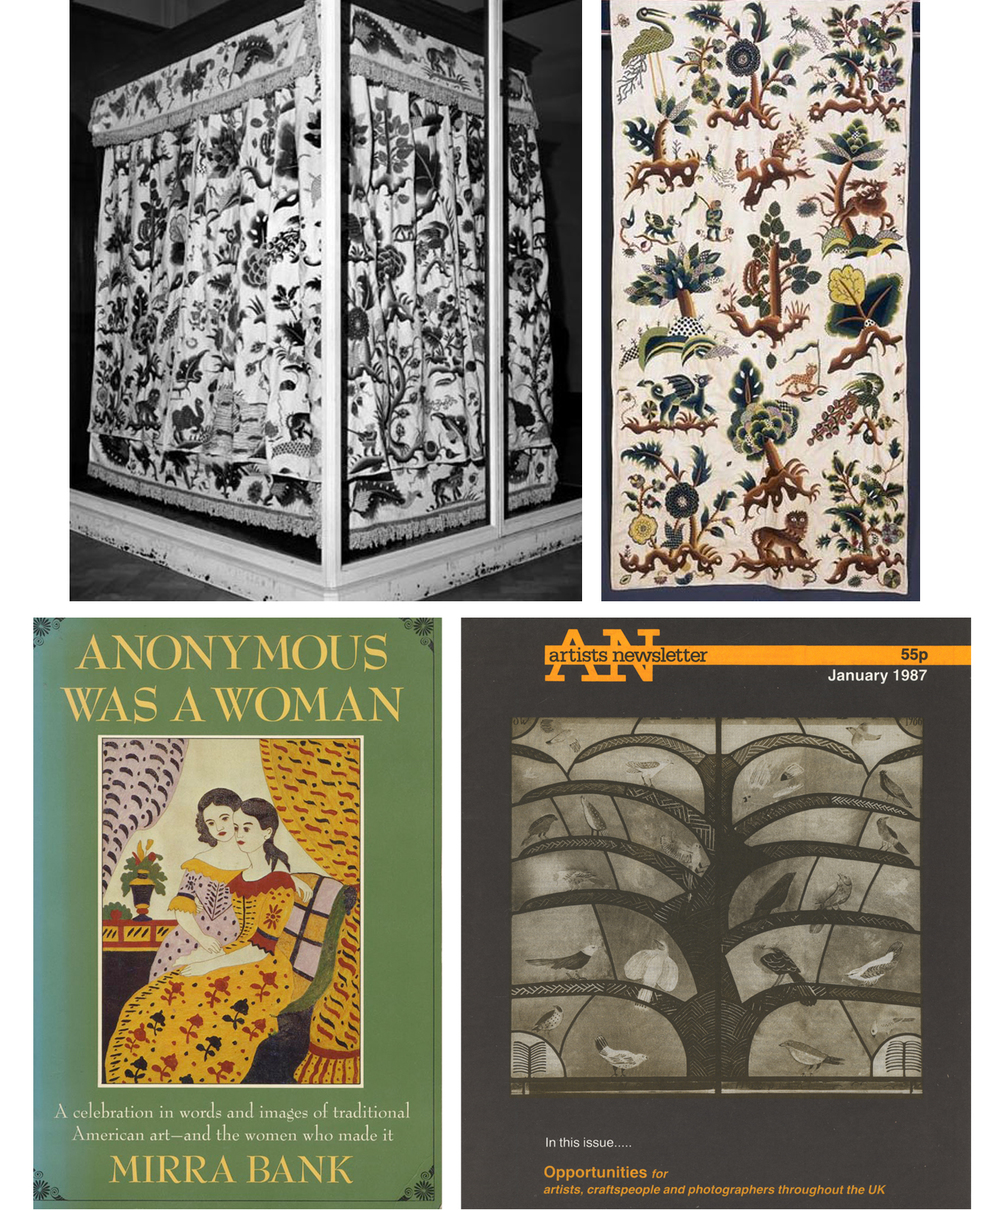 Above: Abigail Pett's curtains in the V&A. Below left: A favourite book. Below right: My first public commission.